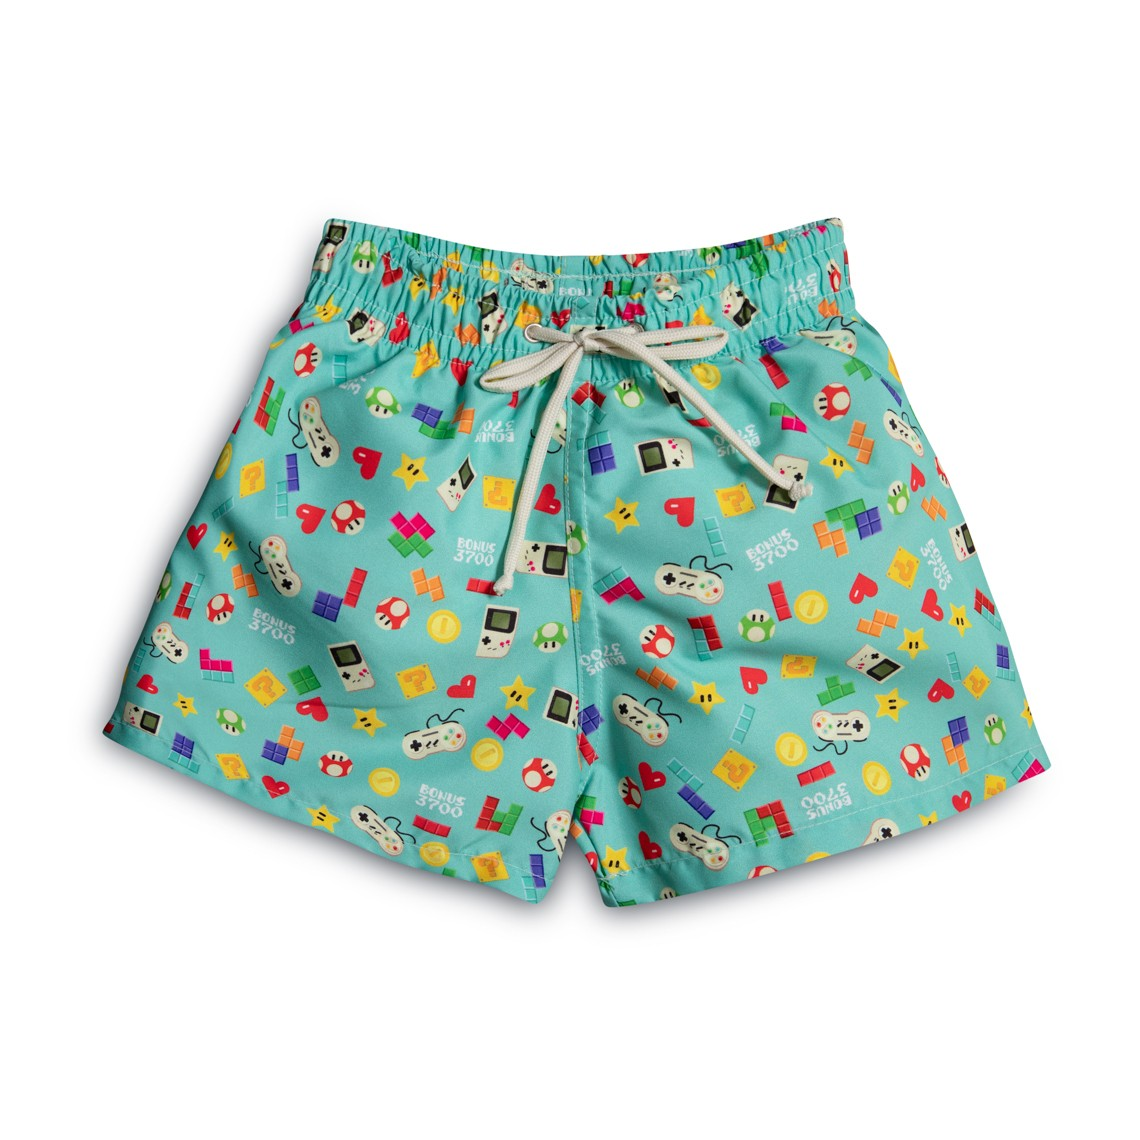 c7363eed6e Boy Swim short Light Green Video Games 2 to 12 years - Ocoly